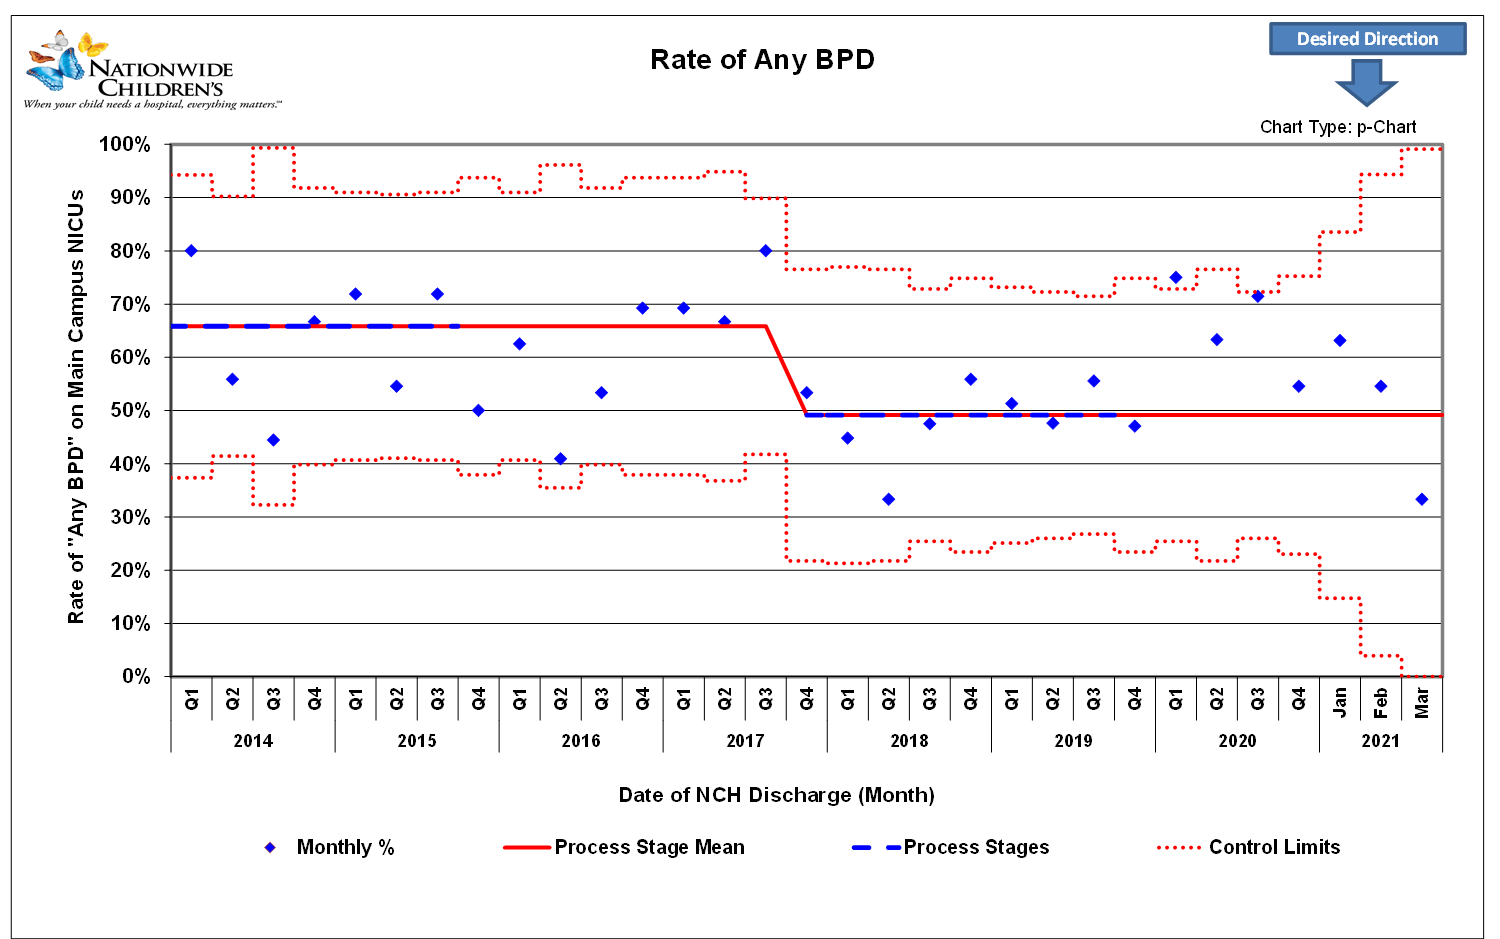 chart depicting rate of any bpd for main campus nicus